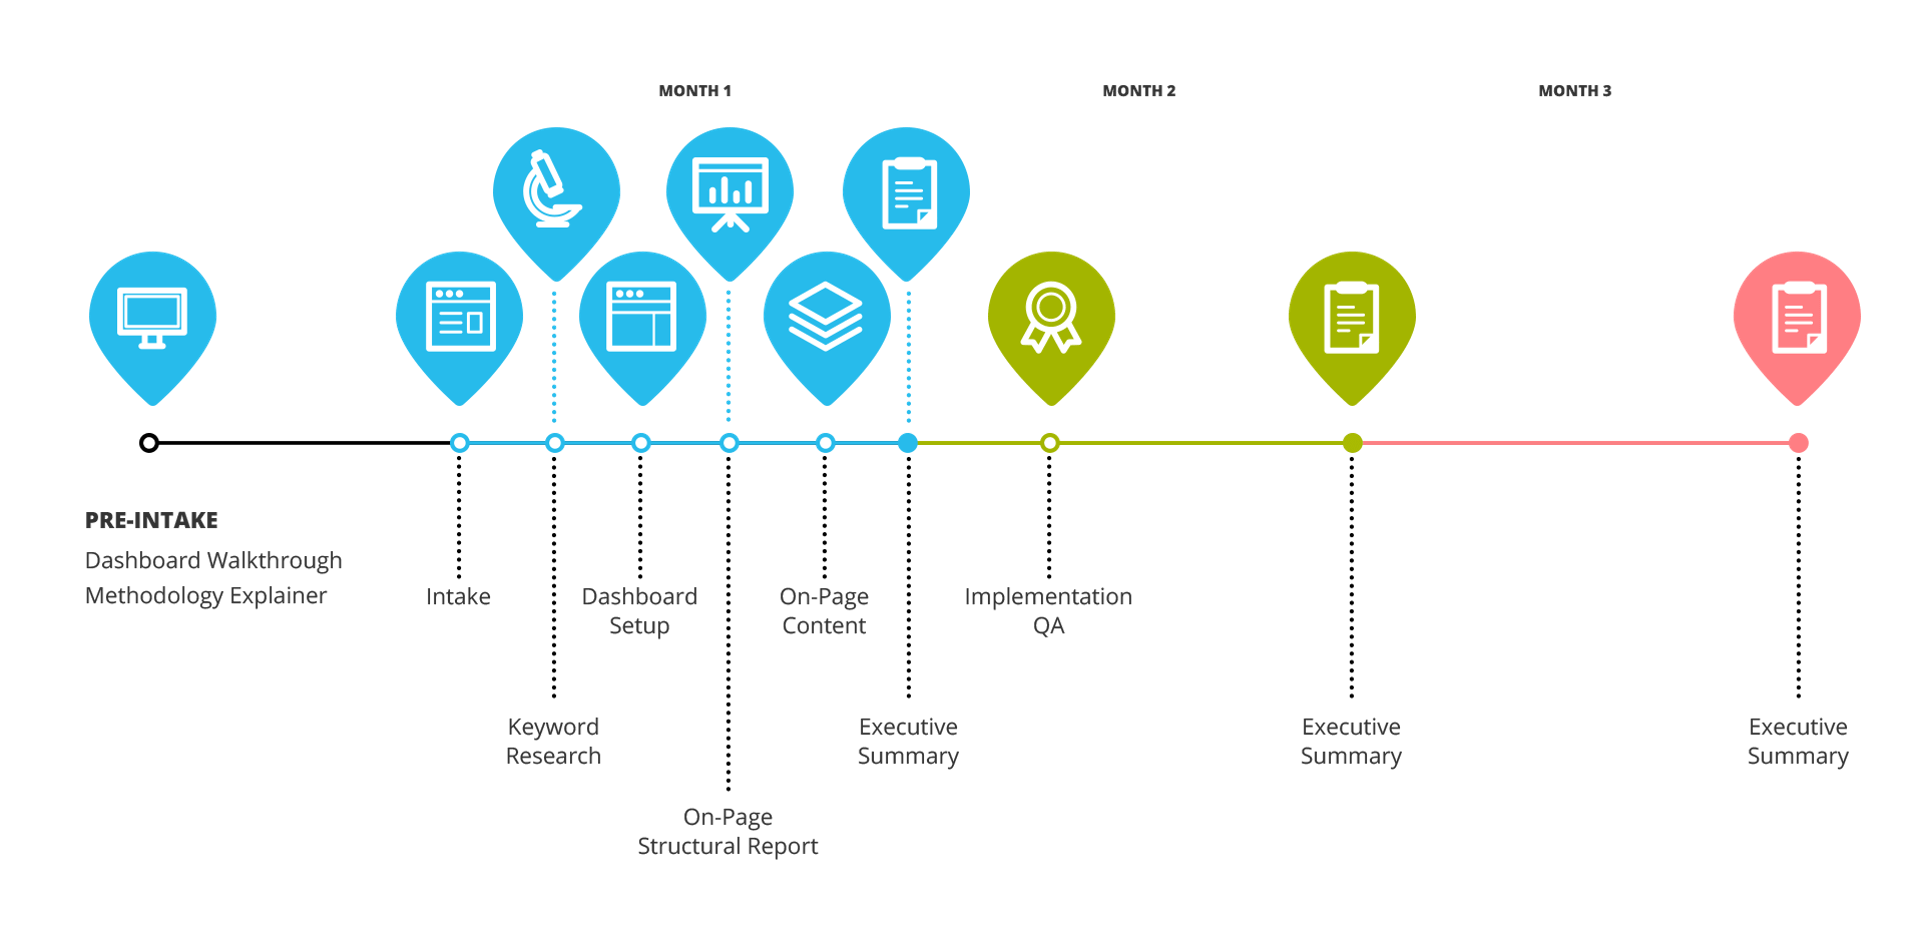 SEO roadmap and timeline